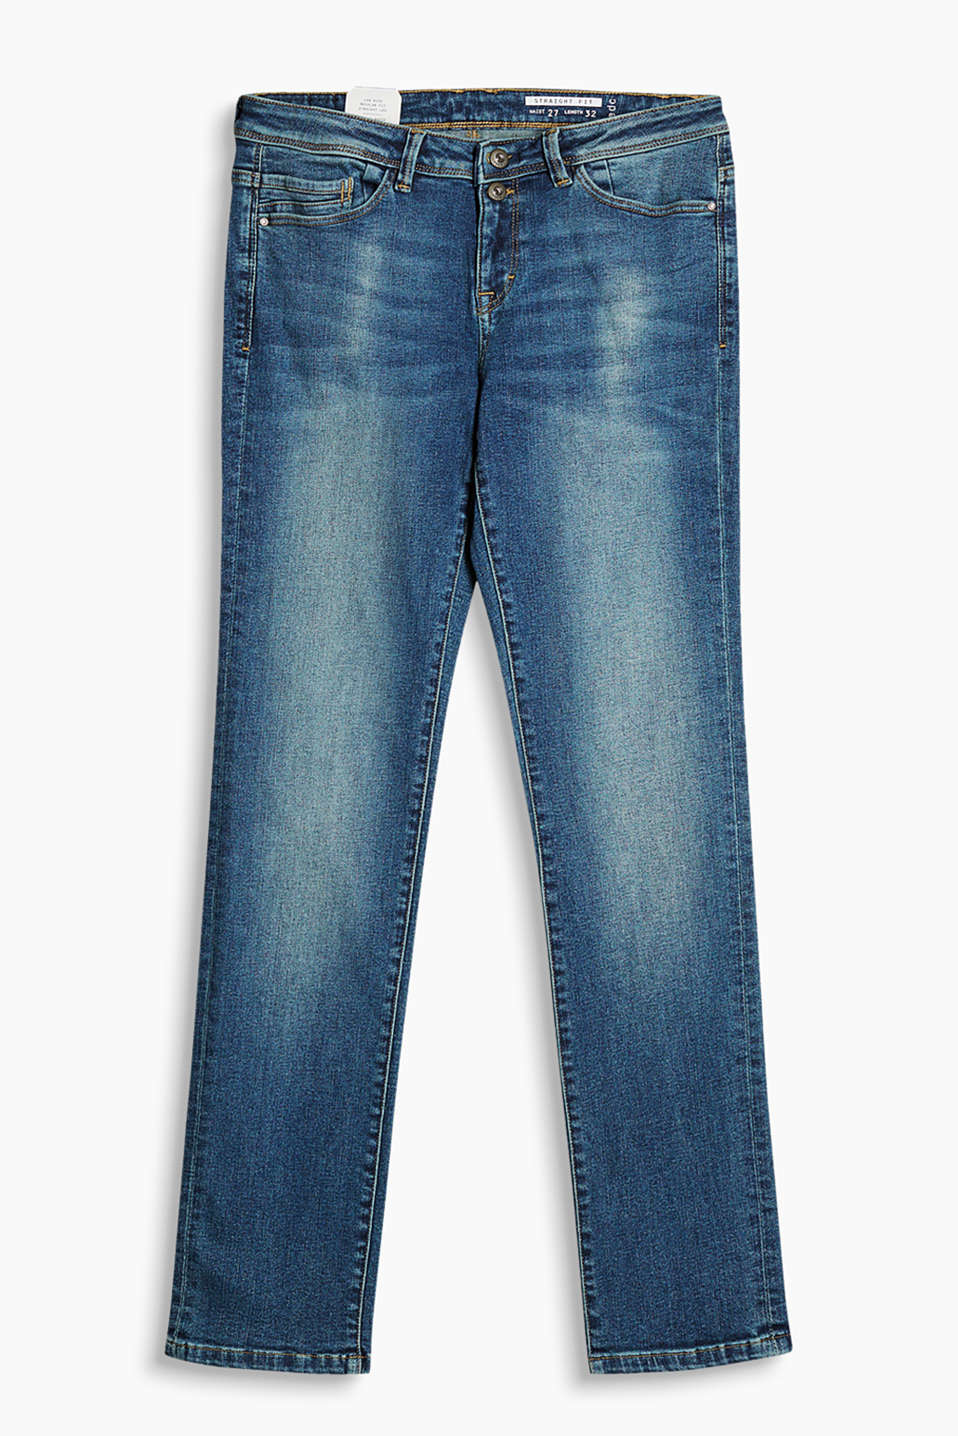 Straight cut, 5-pocket jeans in an authentic garment wash